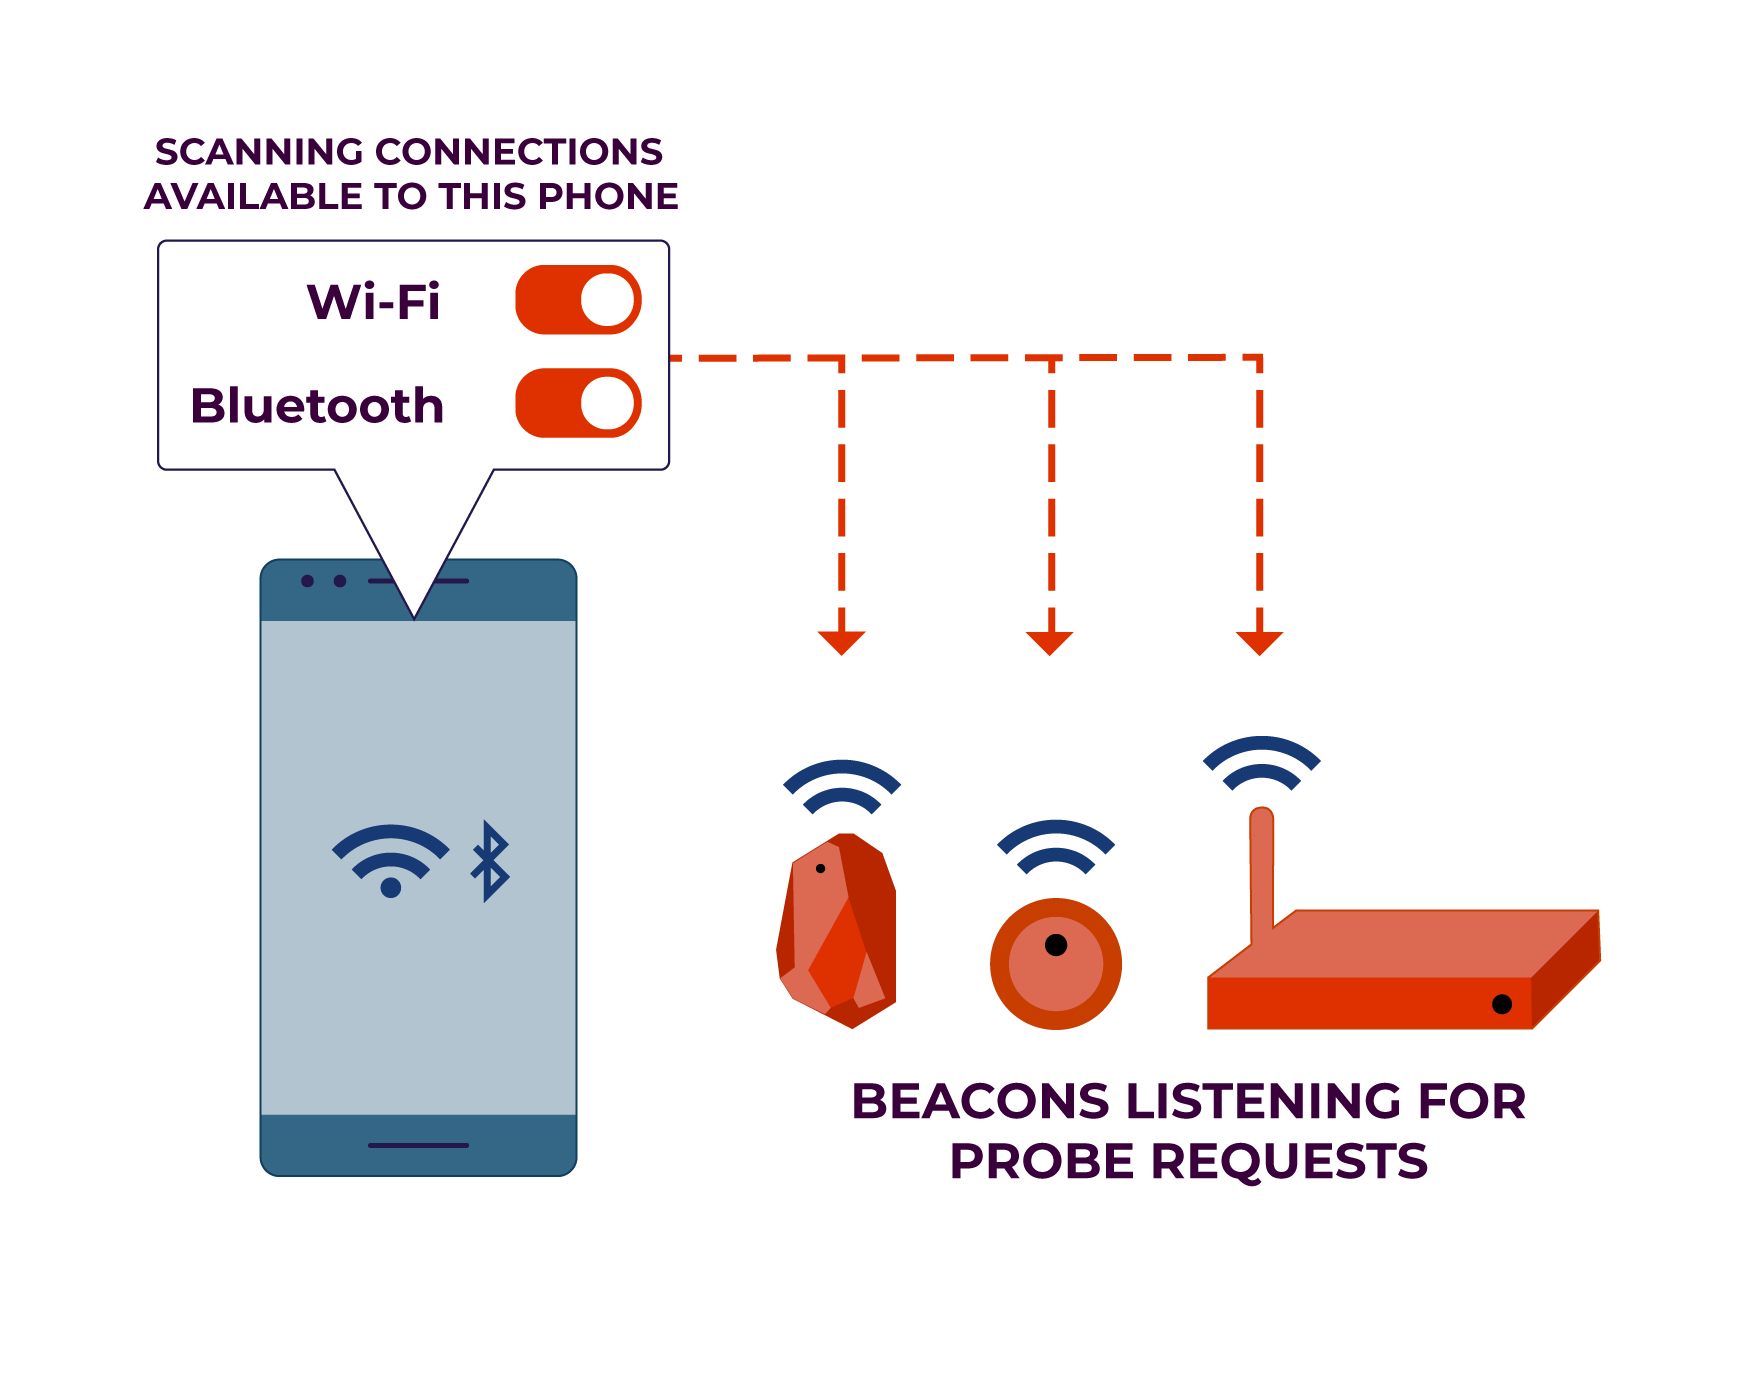 A smartphone emits probe request to scan for available WiFi and Bluetooth connections. Several wireless beacons listen passively to the requests.